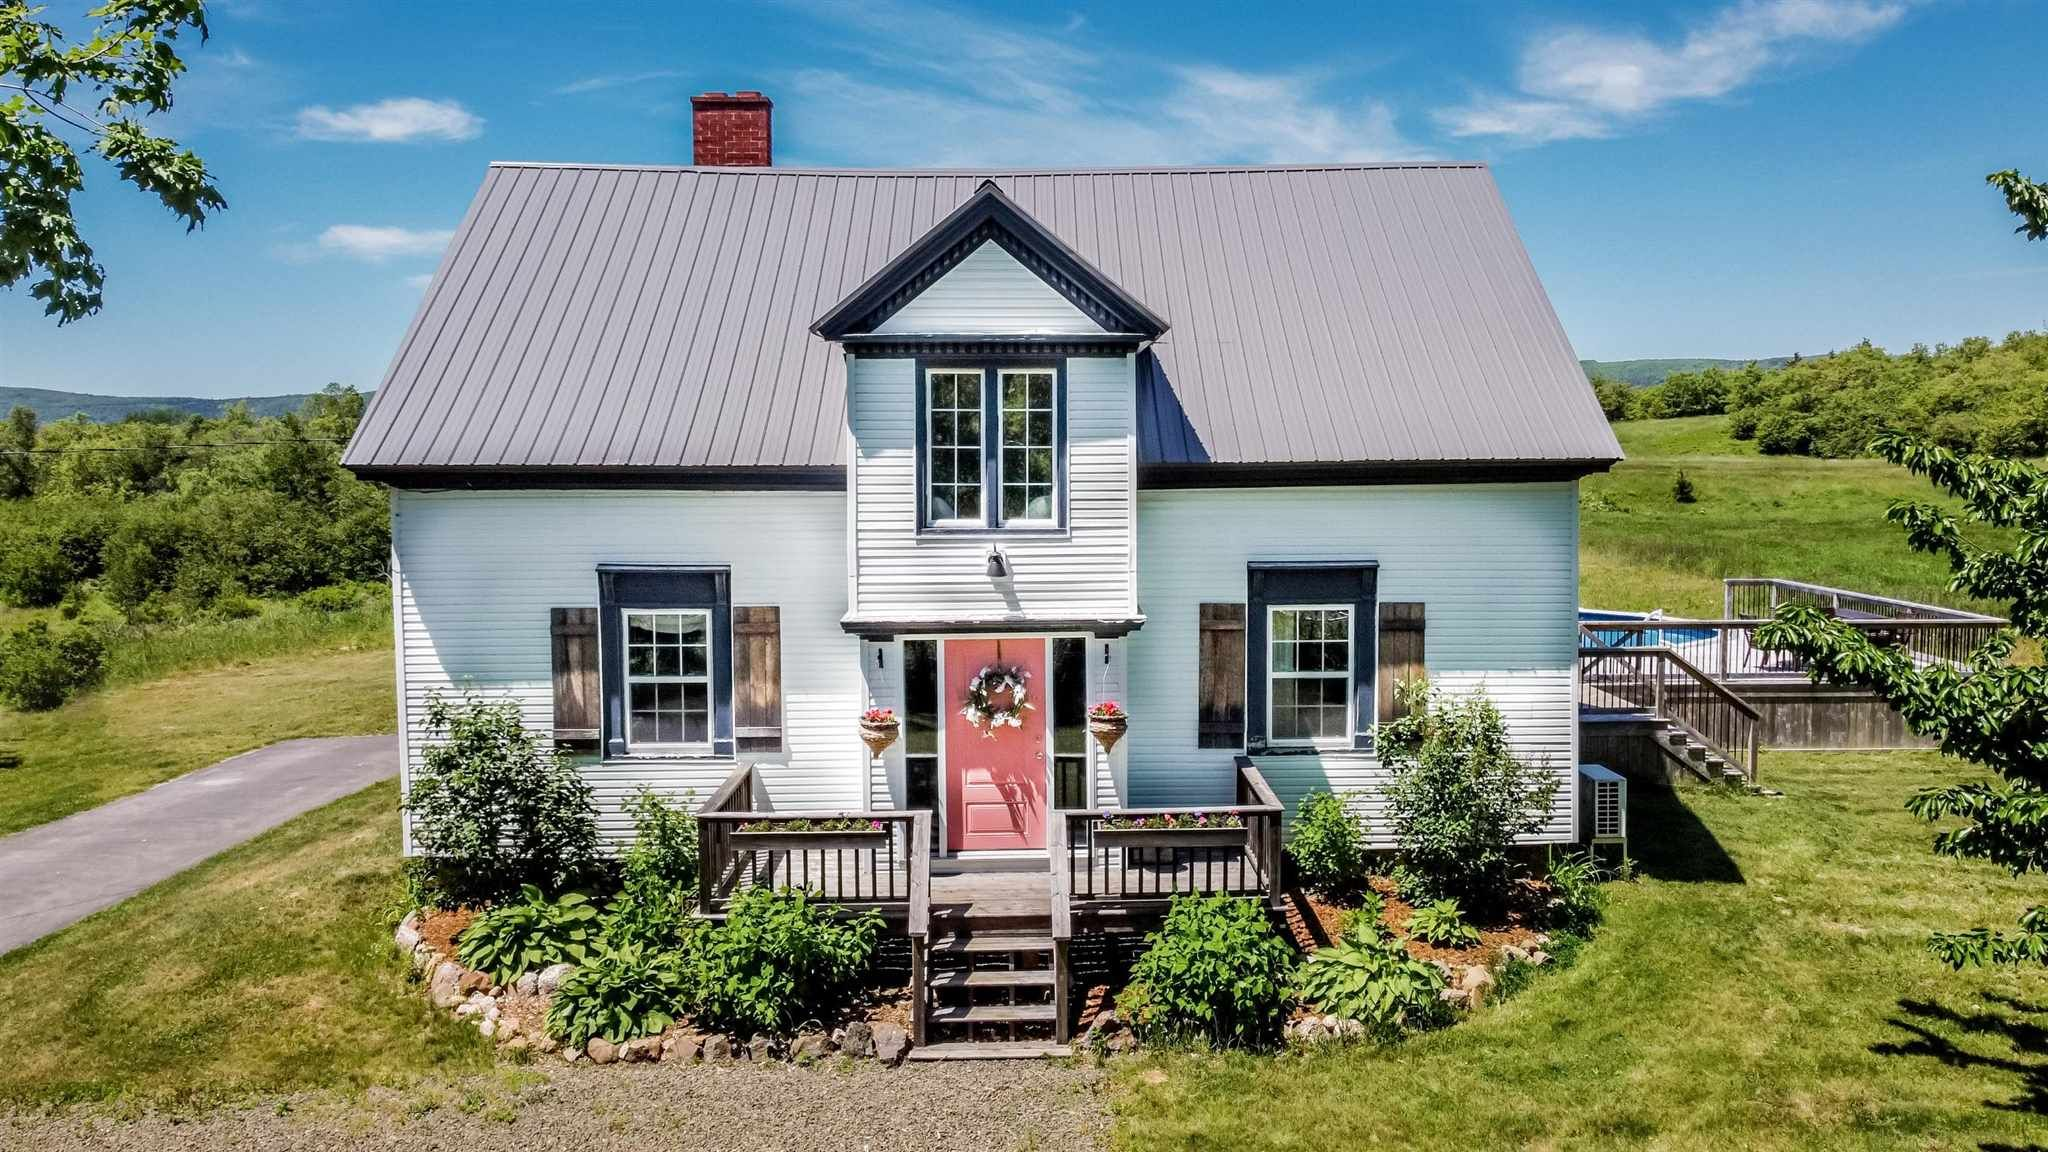 Main Photo: 1893 Highway 201 in Round Hill: 400-Annapolis County Residential for sale (Annapolis Valley)  : MLS®# 202114948